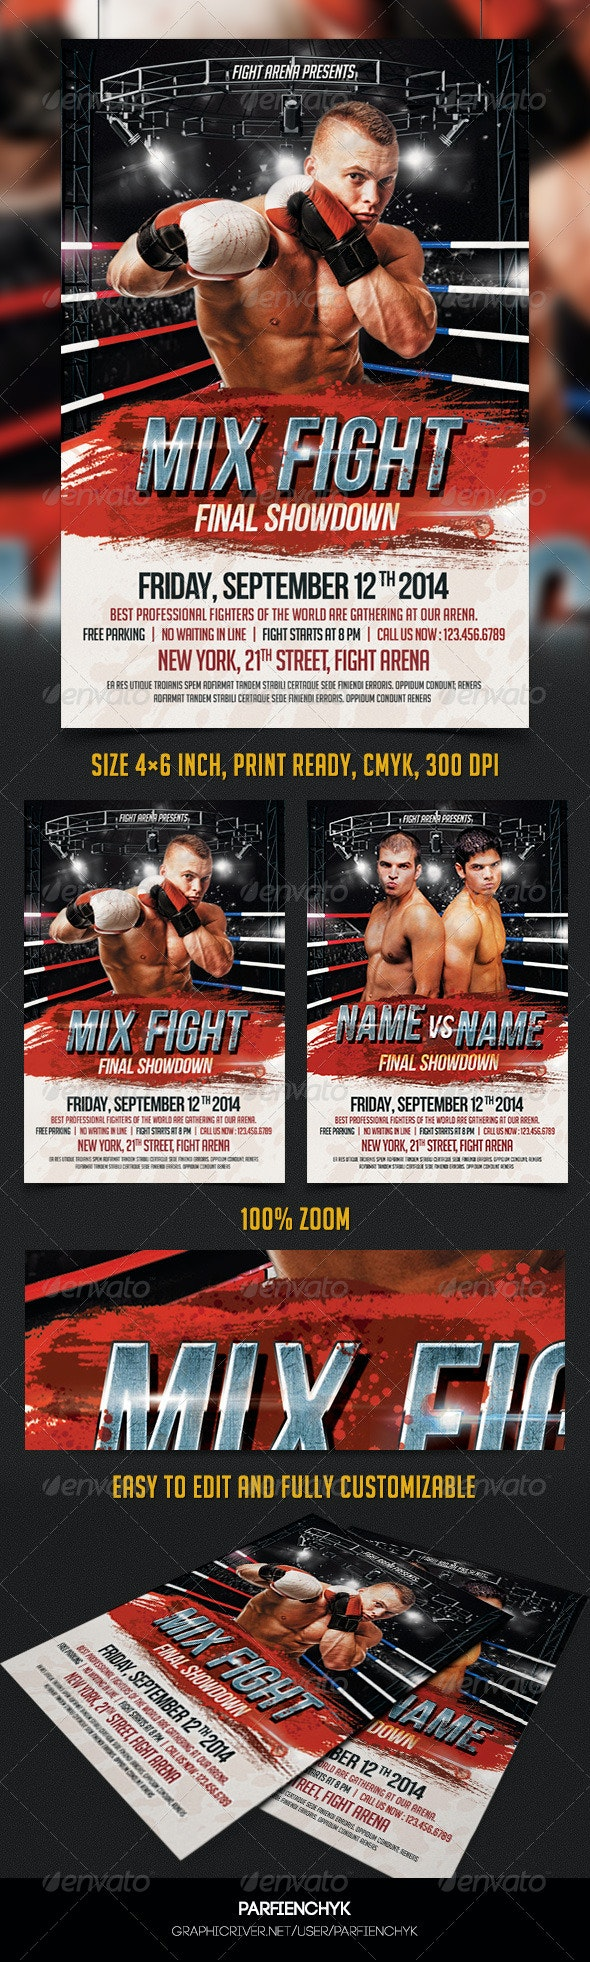 Mix Fight Flyer Template - Sports Events